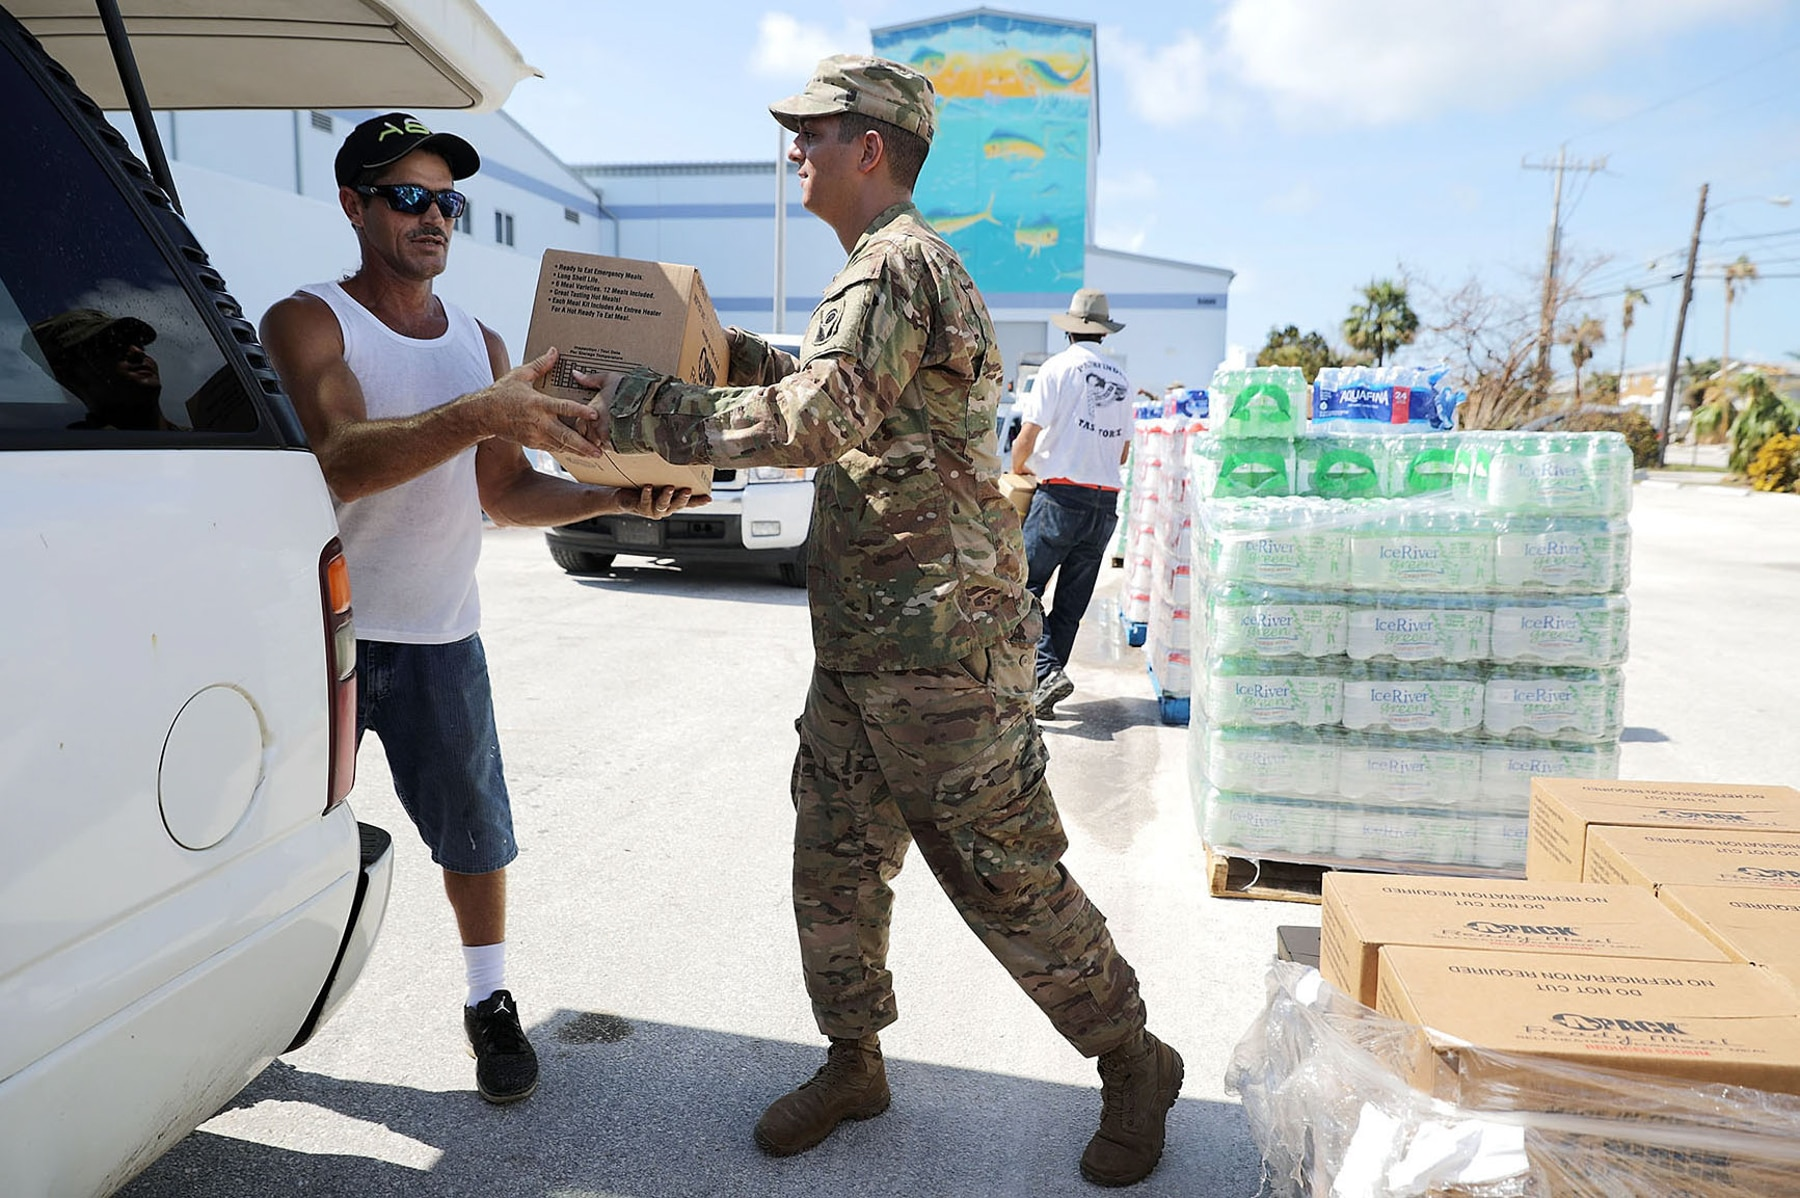 Man receiving box of supplies from soldier to load in his car (Chip Somodevilla/Getty Images)